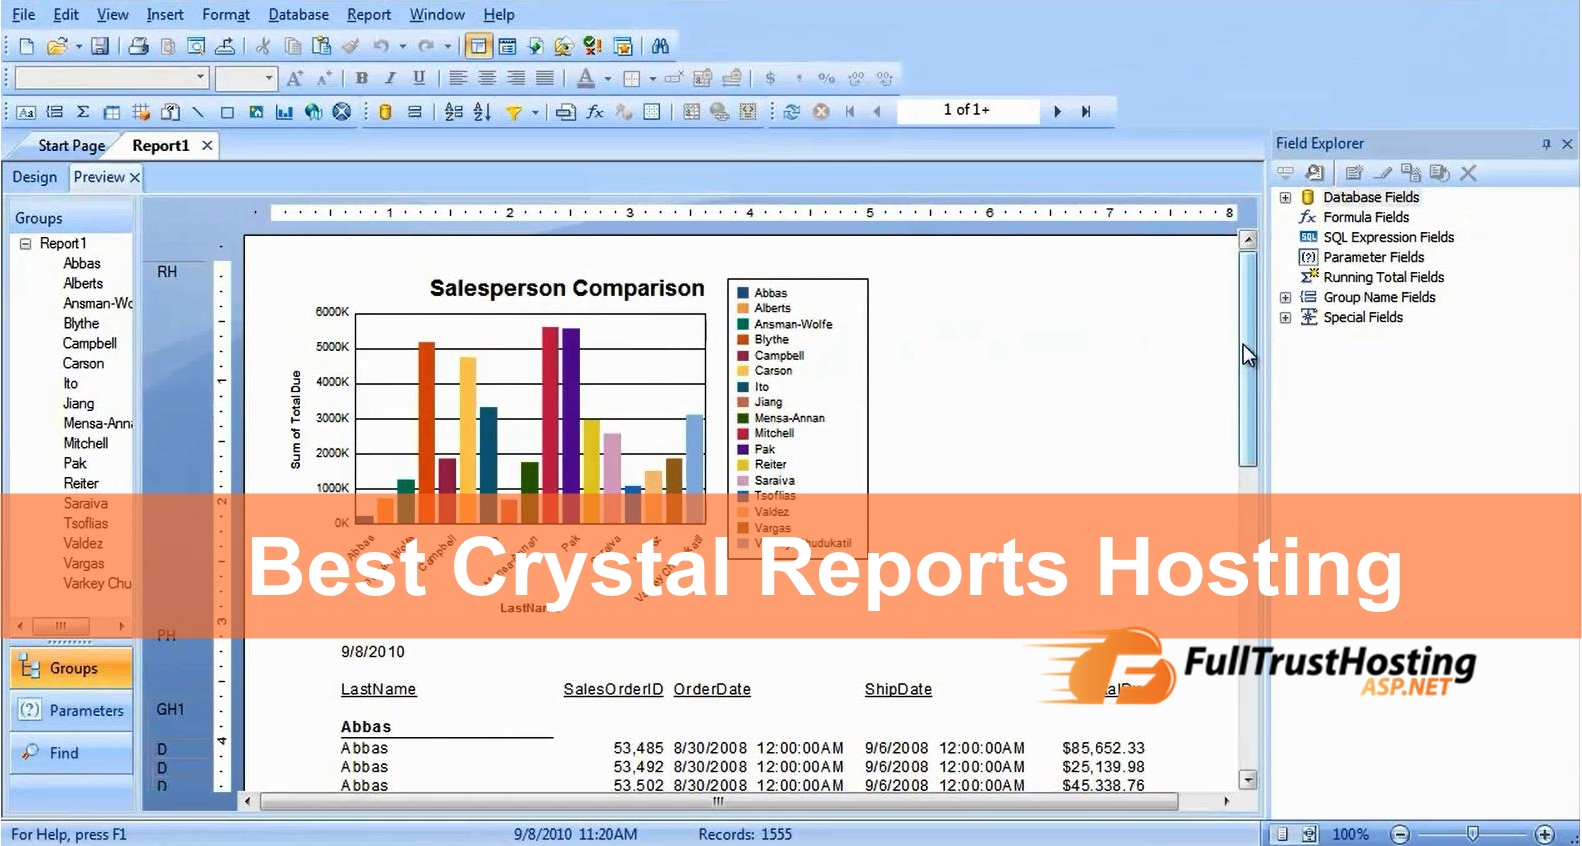 Best Crystal Reports Hosting